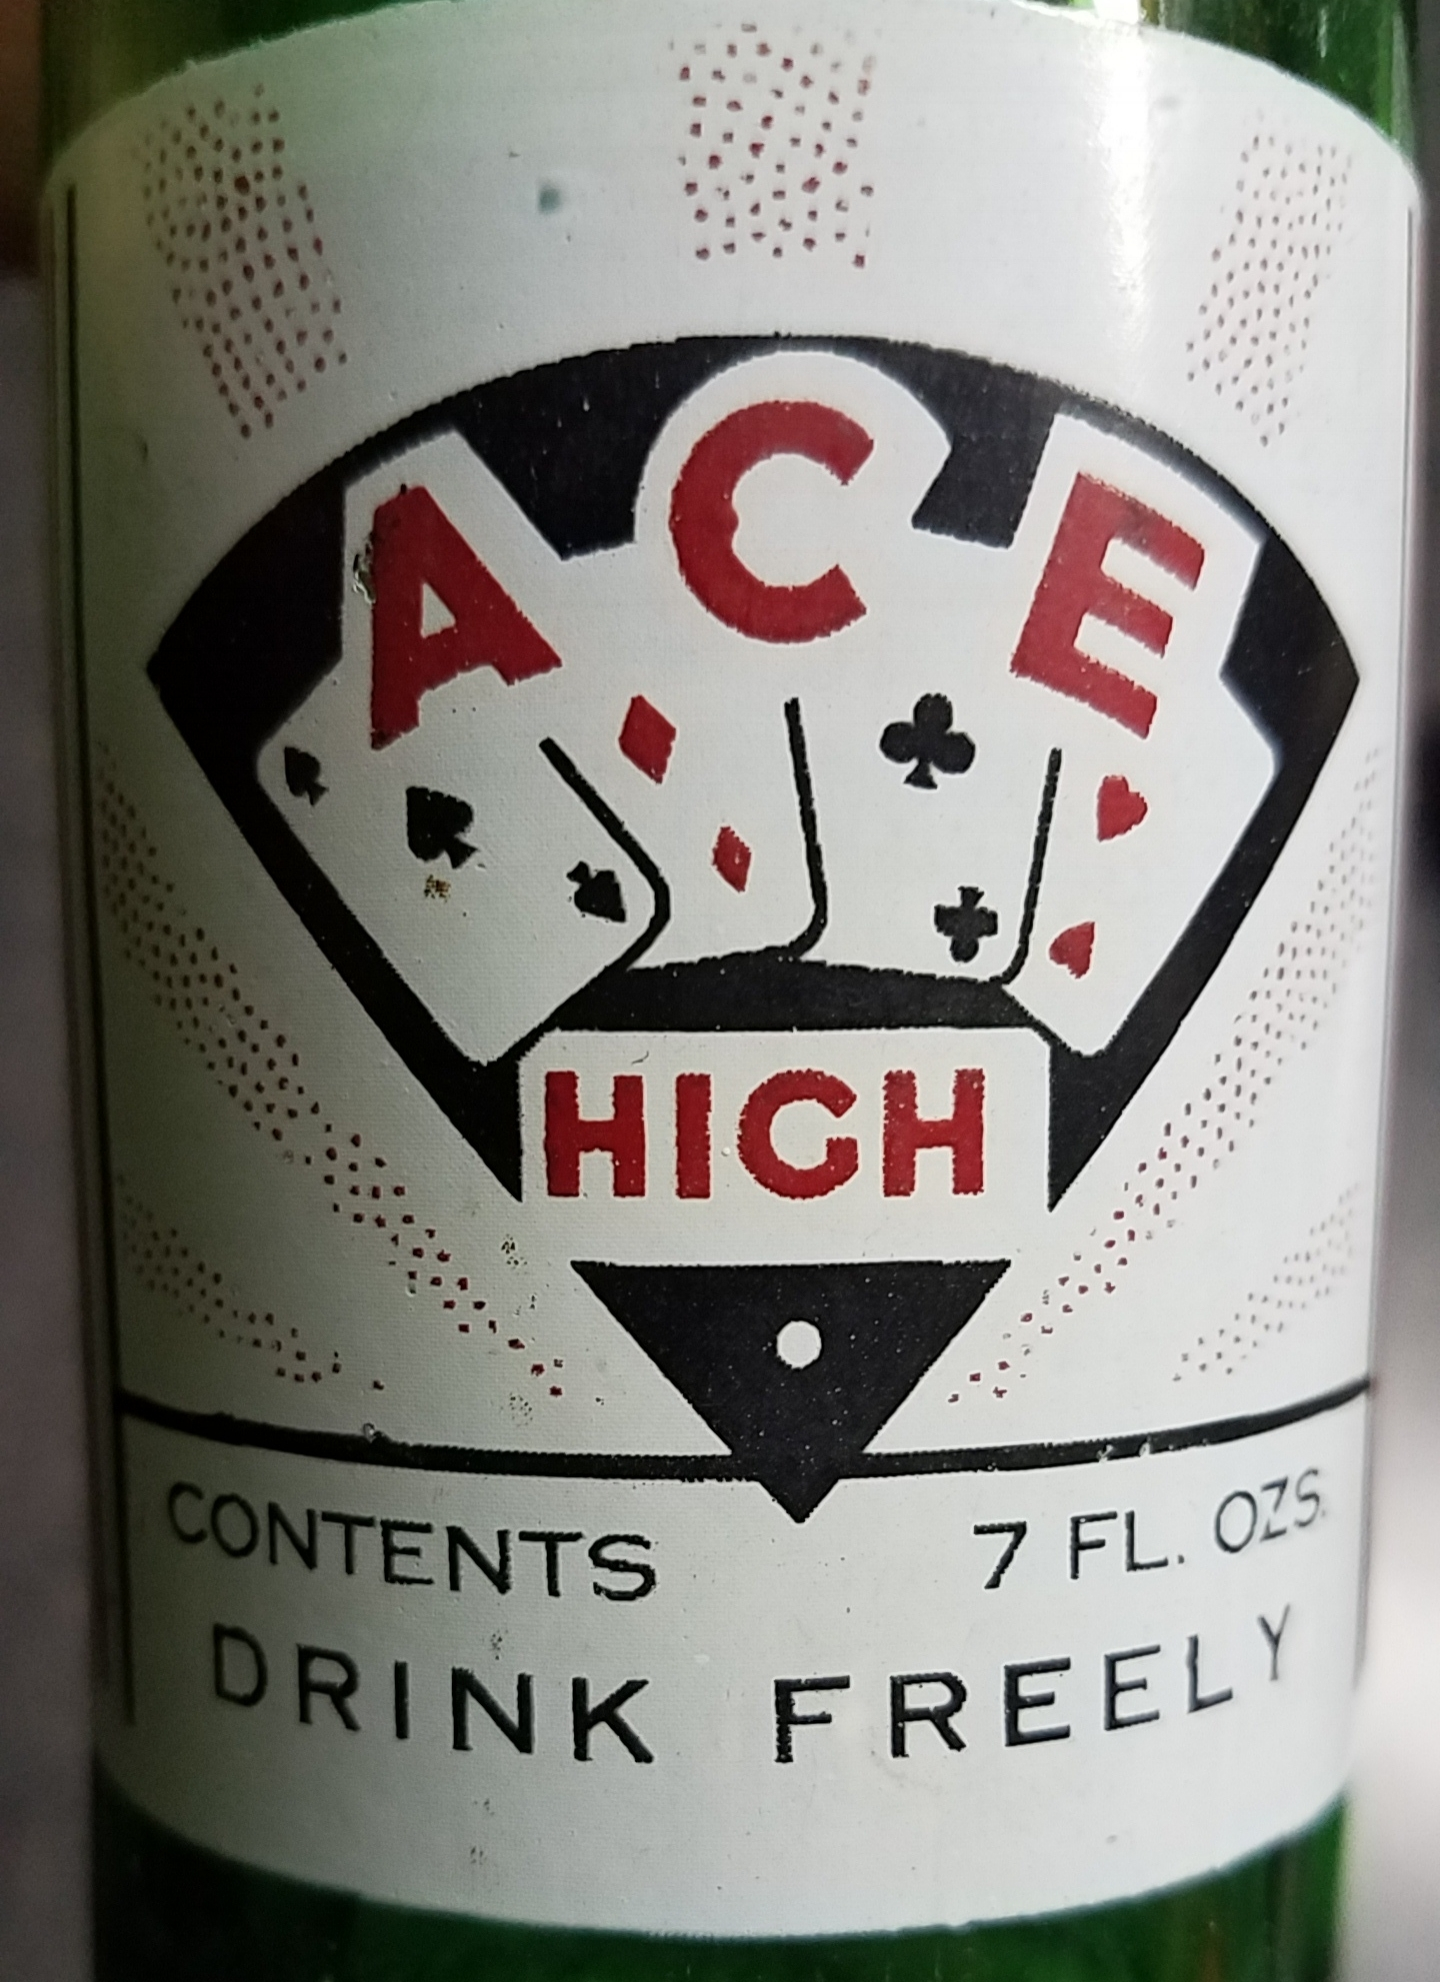 Ace High (Royal Flush)